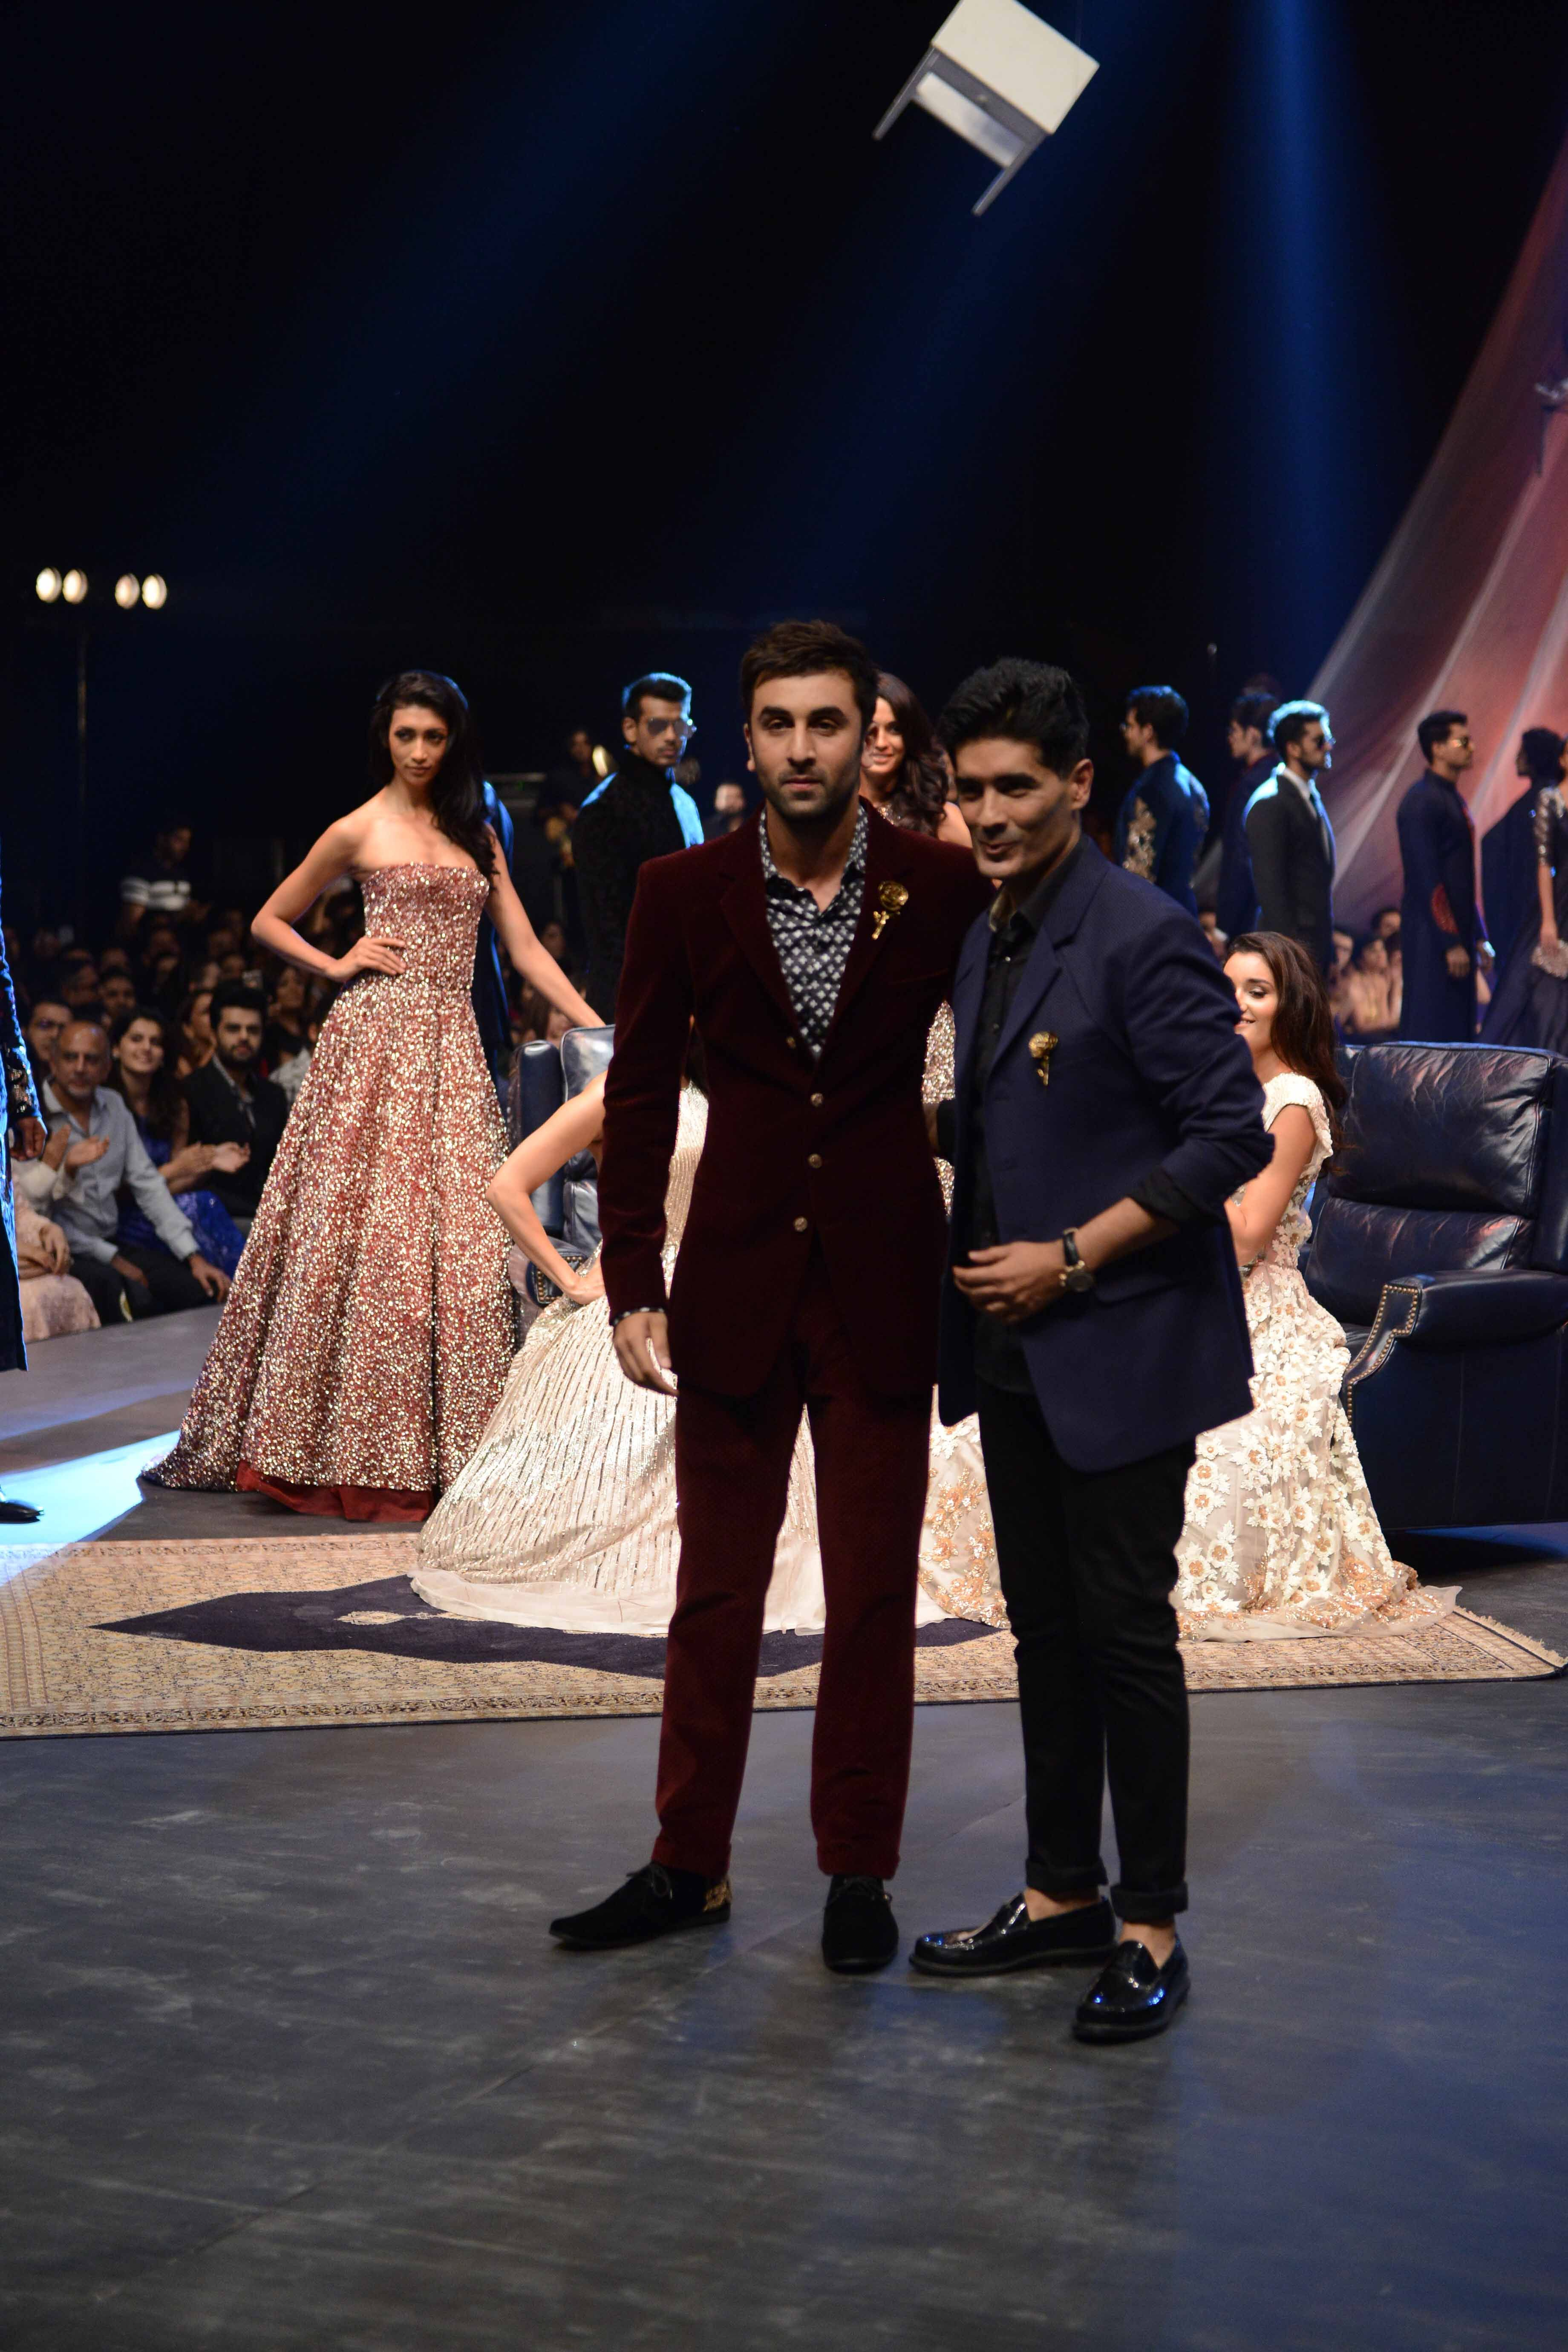 Manish malhotra presented a spectacular show with a sophisticated